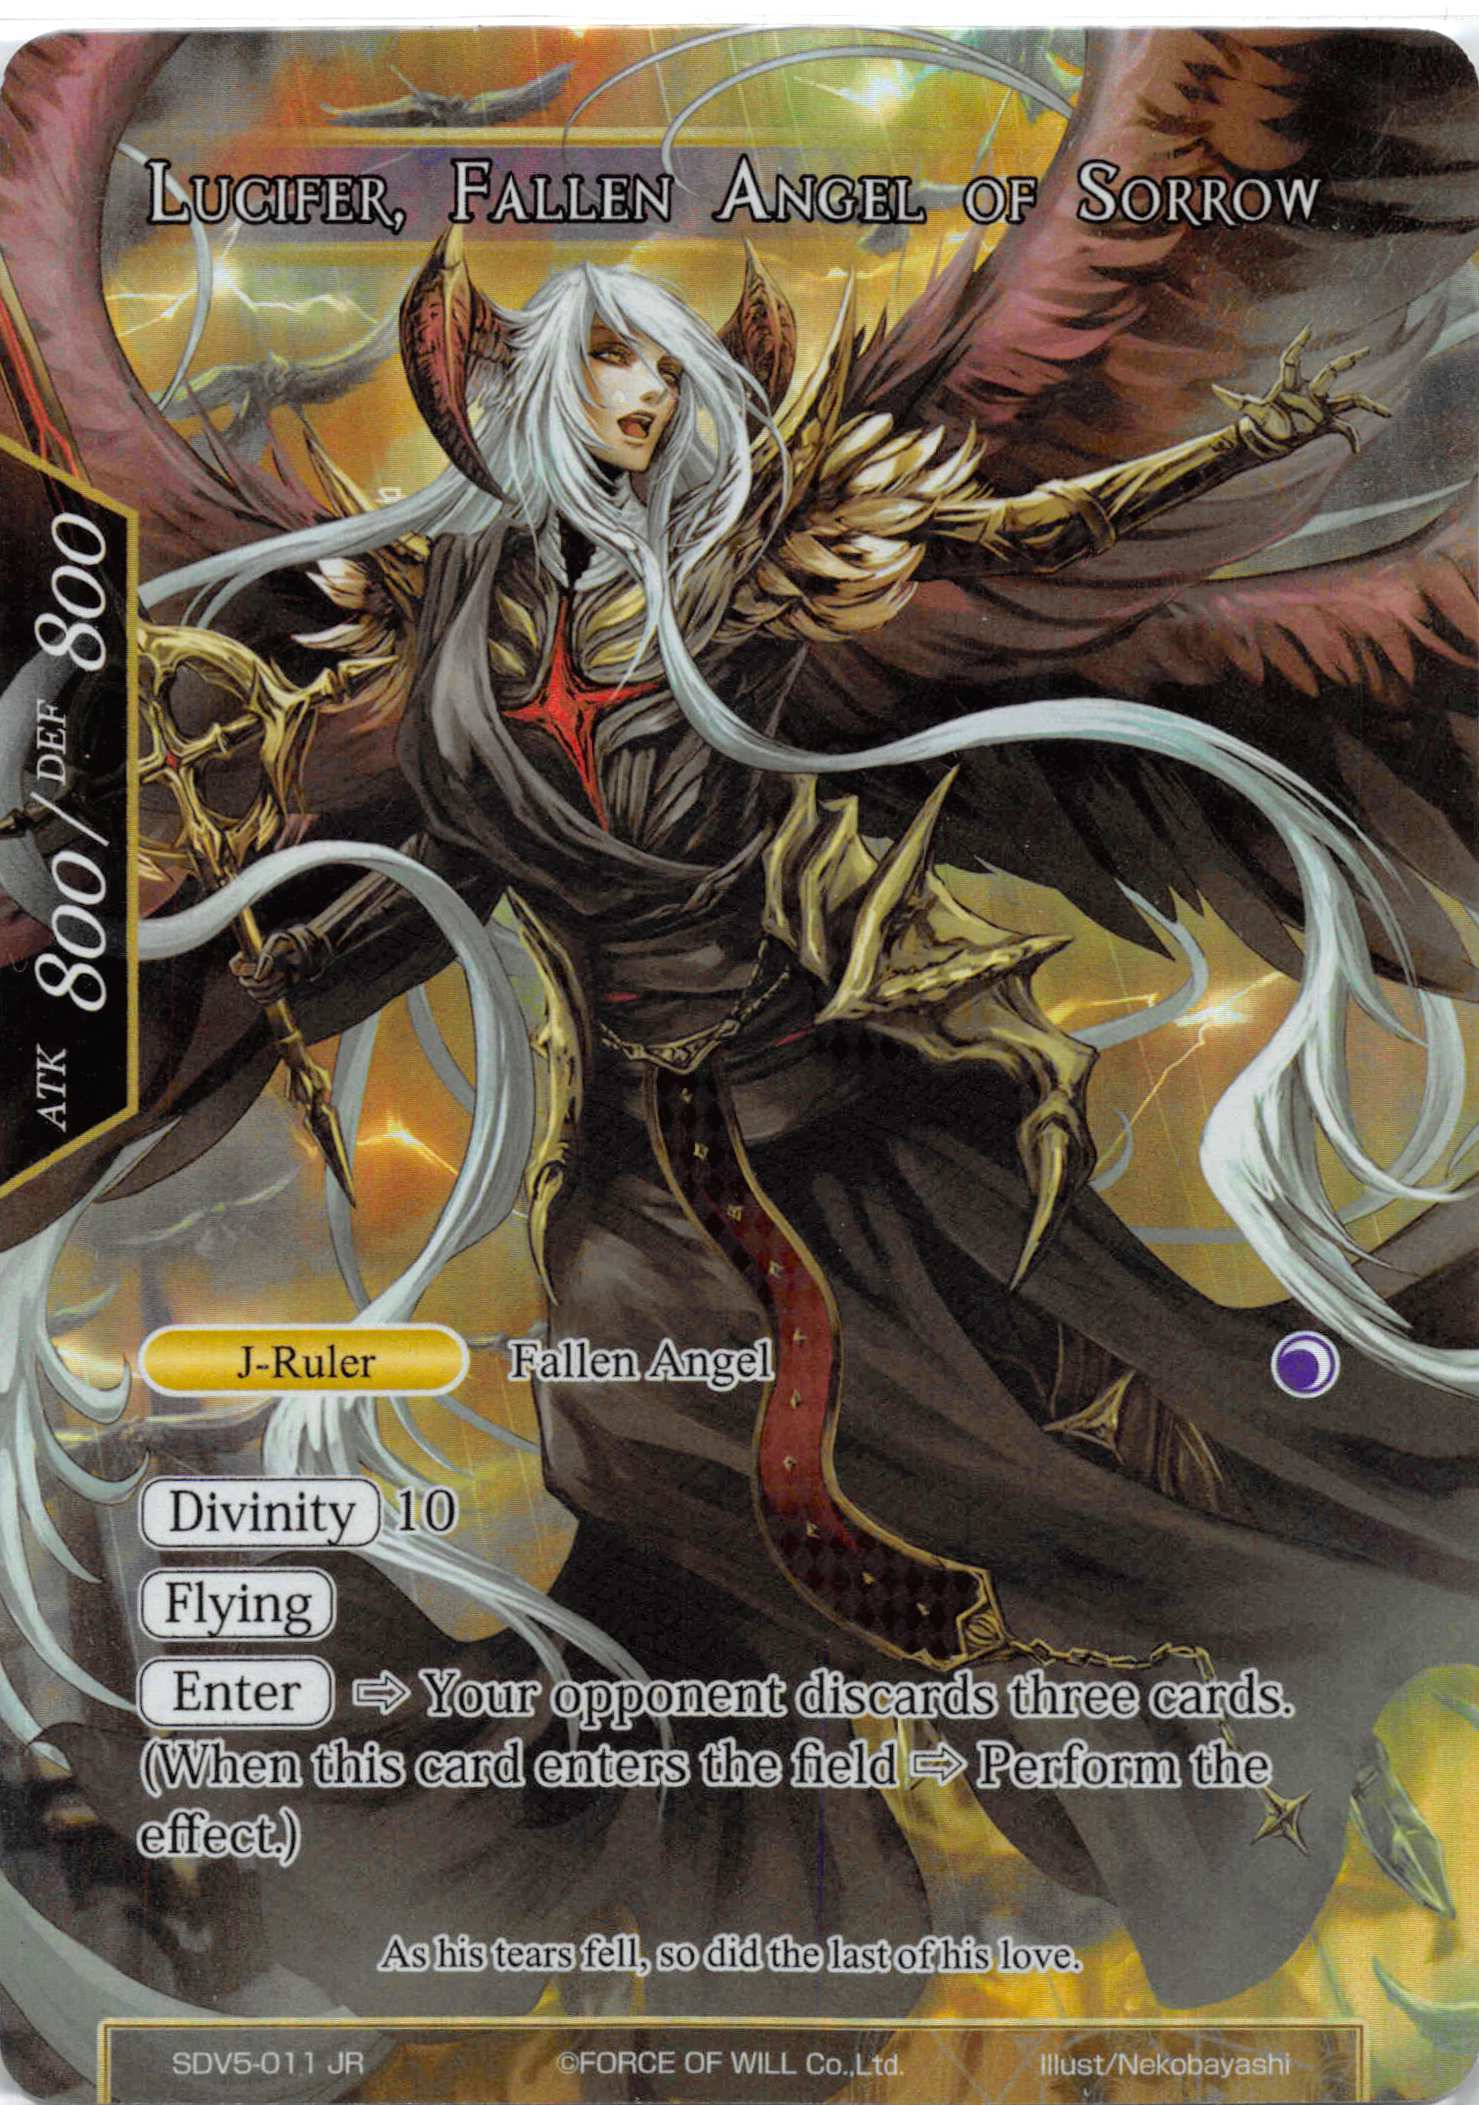 Lucifer / Lucifer, Fallen Angel of Sorrow - Duel Kingdom | Duel Kingdom